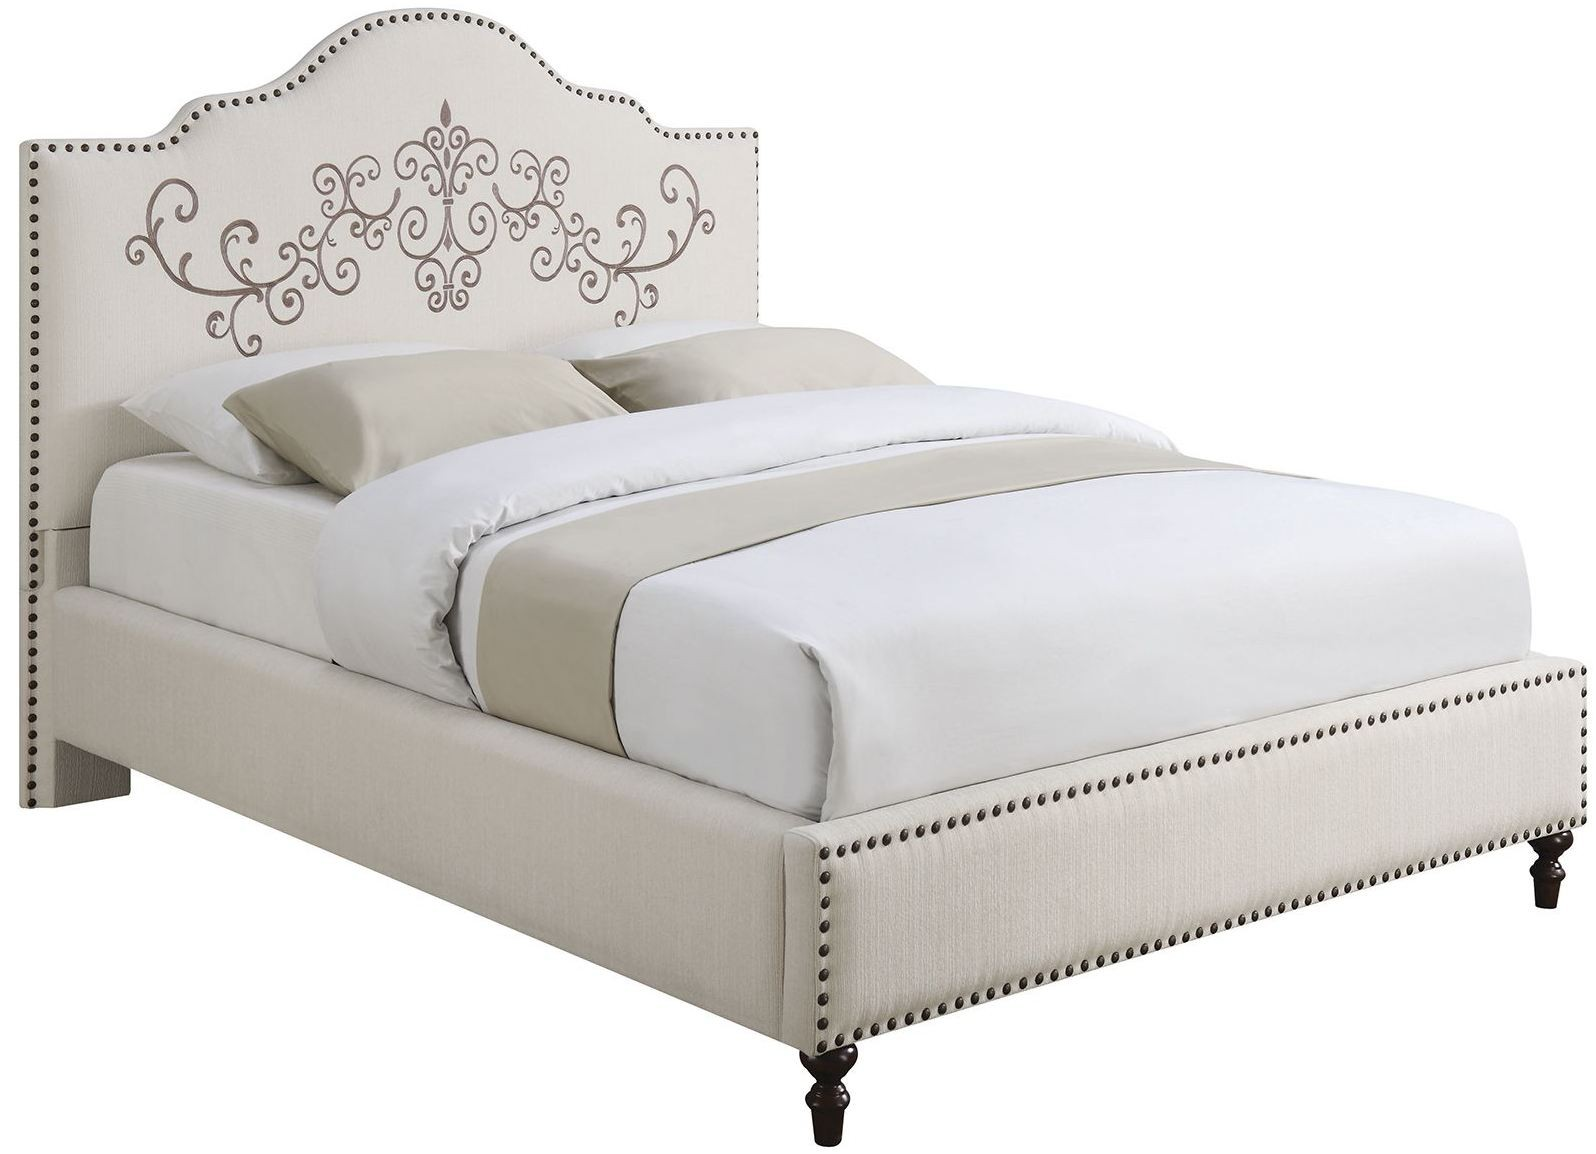 Homecrest Cream Upholstered King Platform Bed Ke